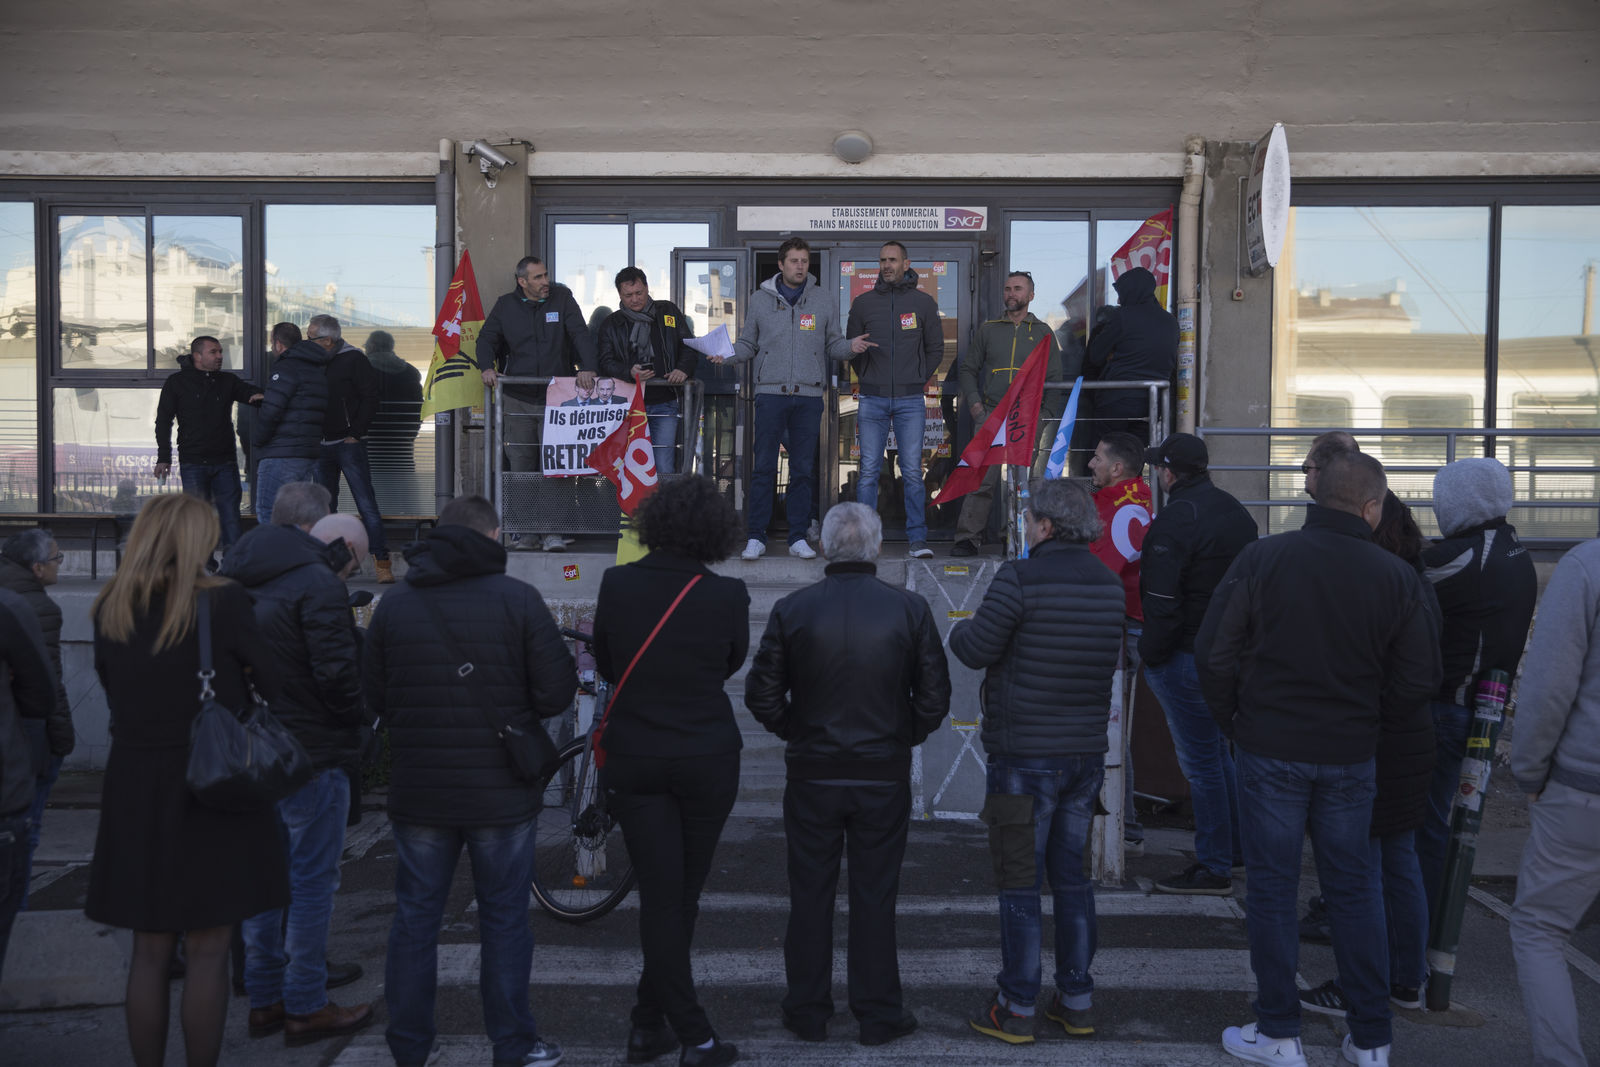 Railway workers gather for a union general assembly meeting at the Gare St-Charles station in Marseille, southern France, Monday, Dec. 9, 2019.{ } (AP Photo/Daniel Cole)